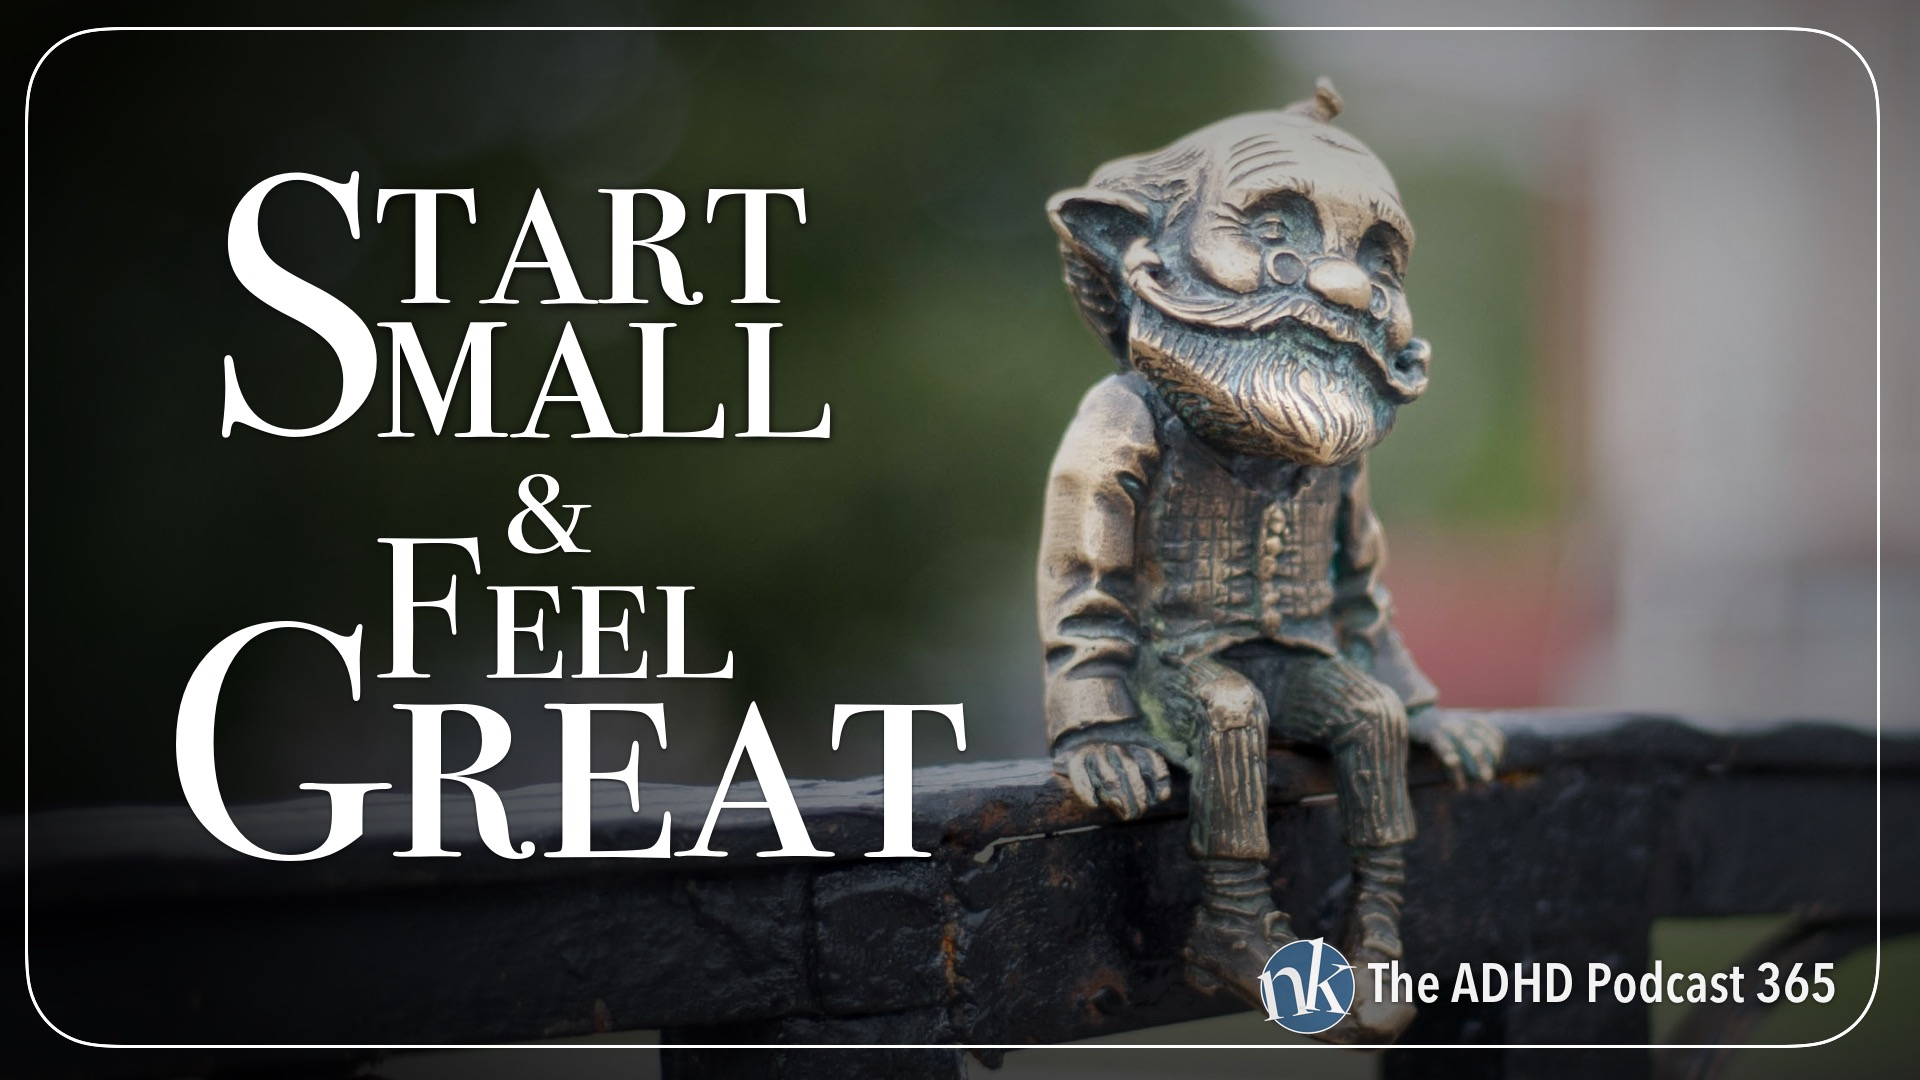 Listen to Starting Small is Nothing to Fear on The ADHD Podcast